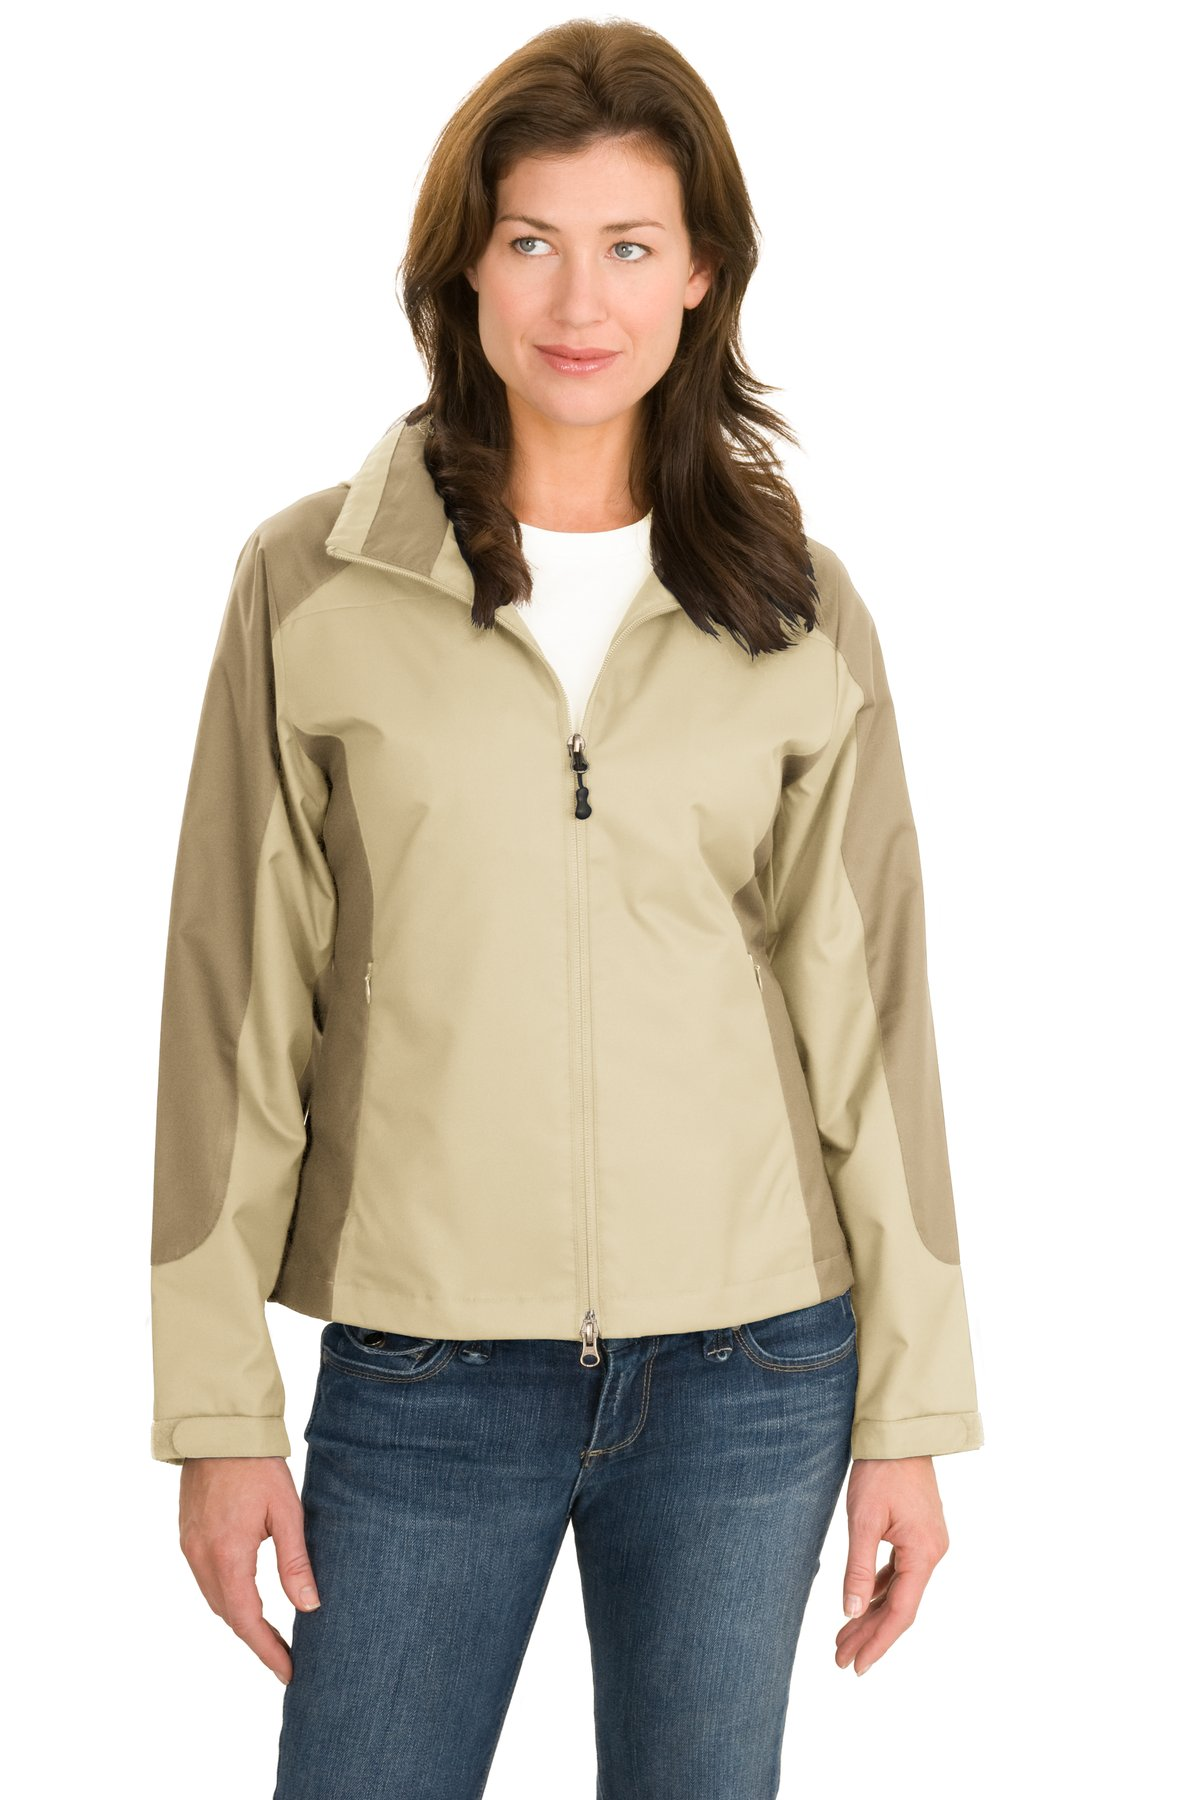 Port Authority ®  Ladies Endeavor Jacket.  L768